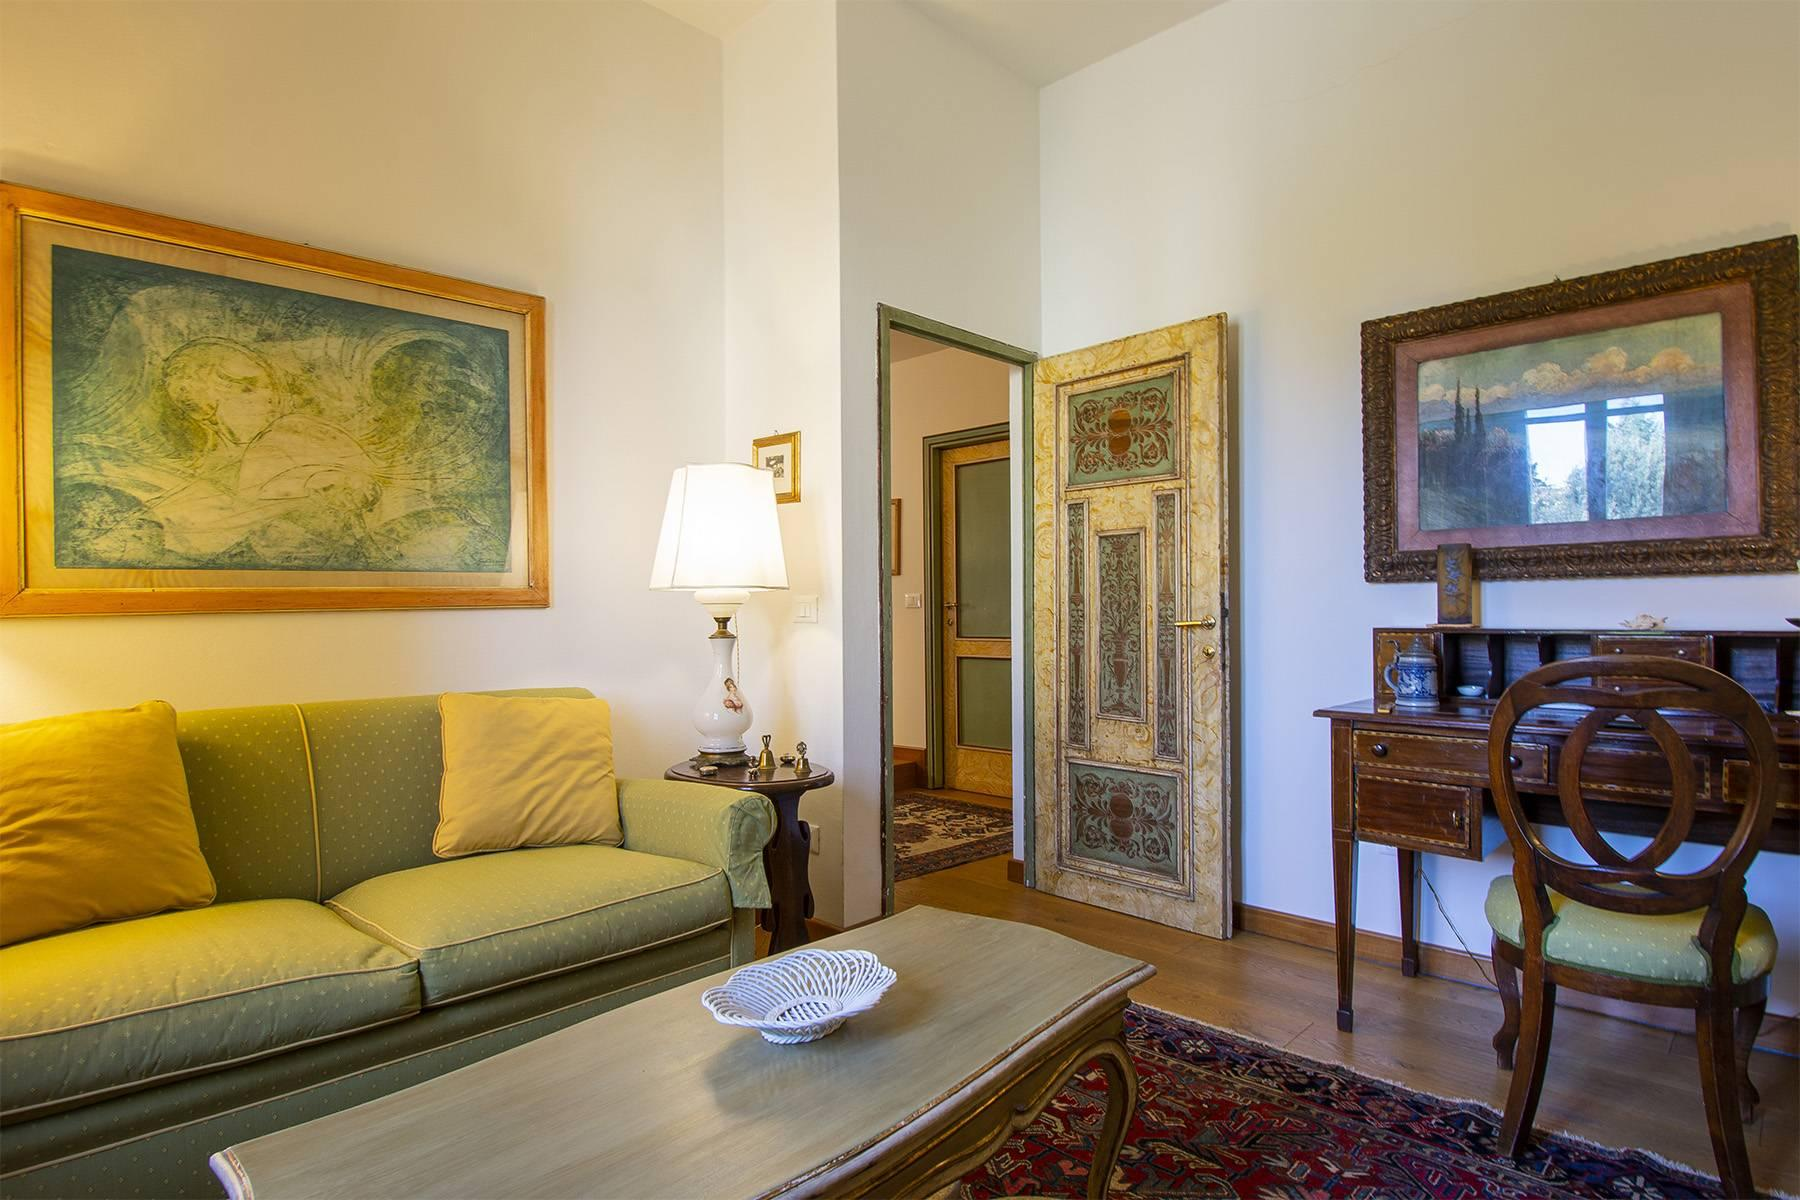 Beautiful renovated apartment with terrace close to Boboli Gardens and Poggio Imperiale - 17